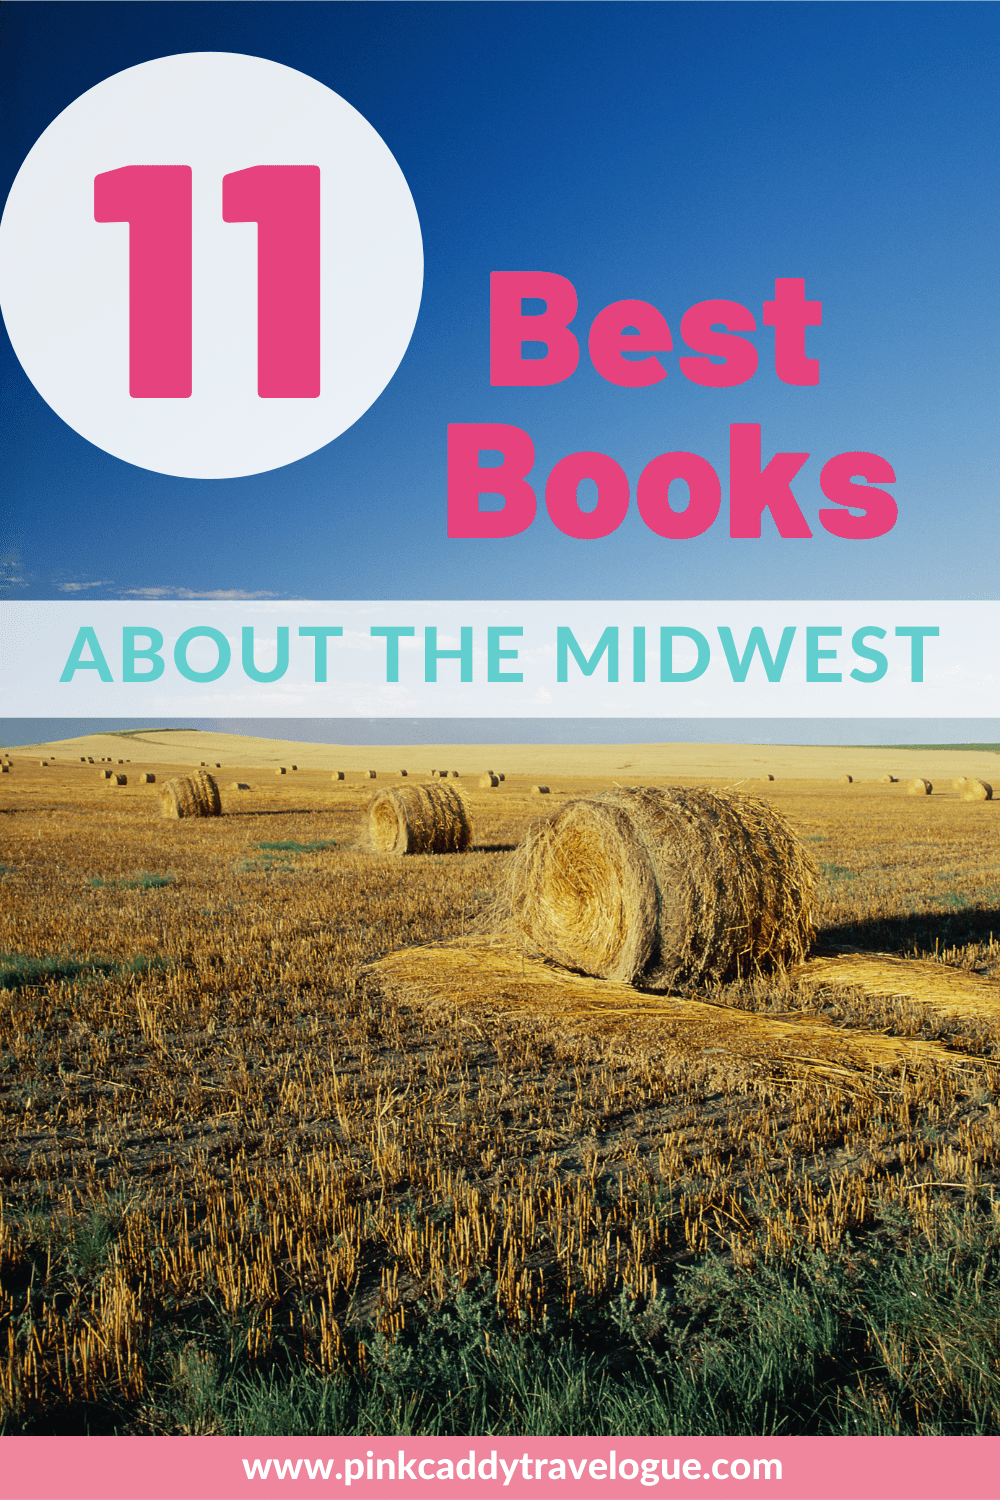 Planning a trip to the United States' Midwest region? Here are the best books to read to inspire Midwest travel! #northdakota #midwest #usa #chicago #travelbooks #reading